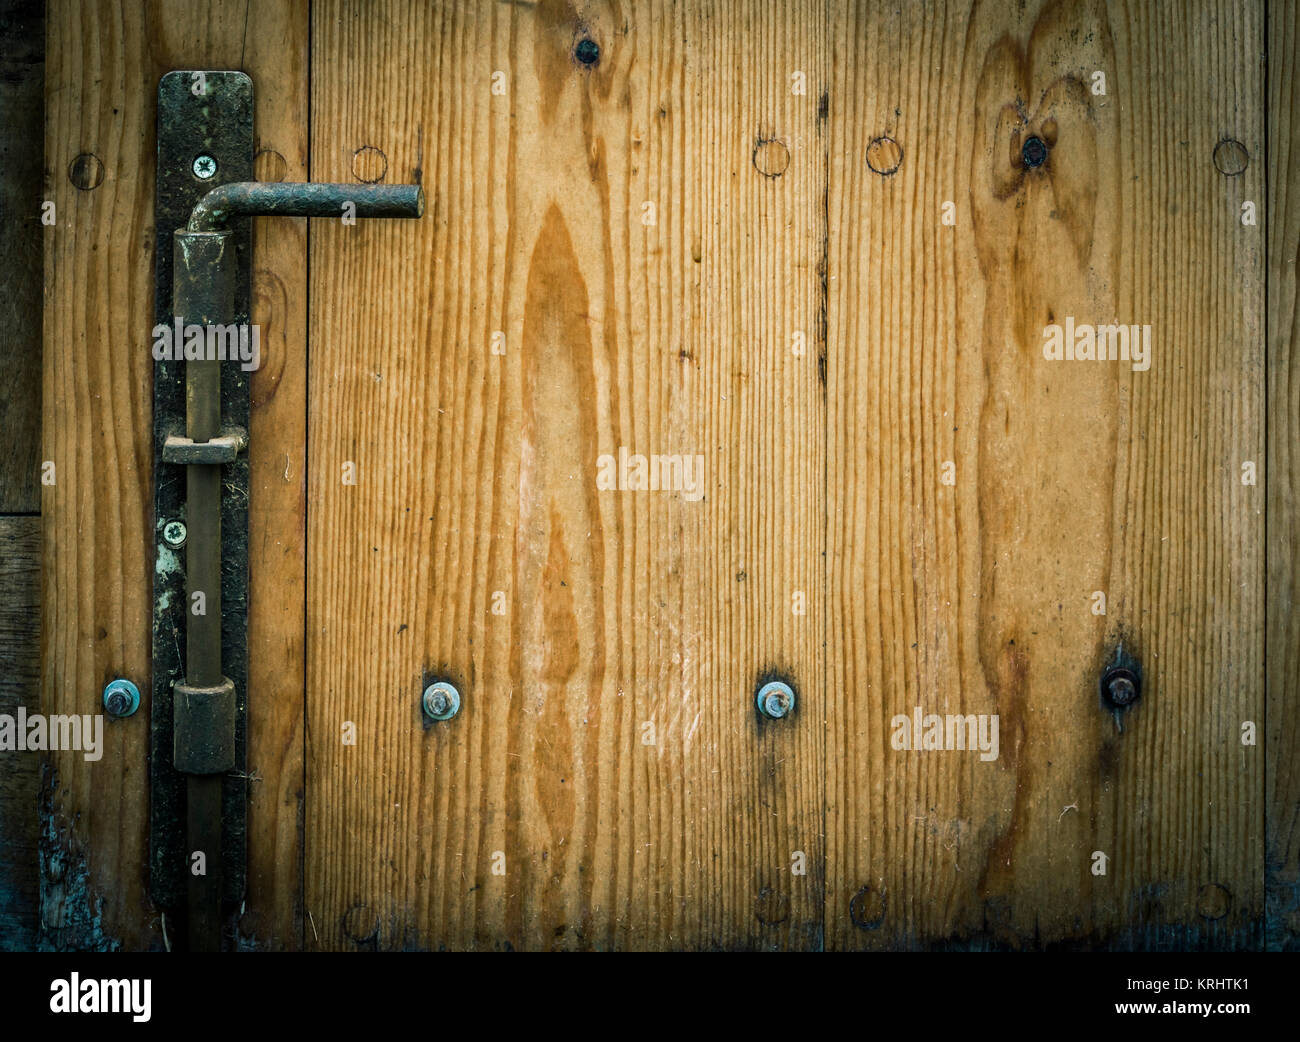 Wooden trap door with iron latch Stock Photo, Royalty Free Image ...